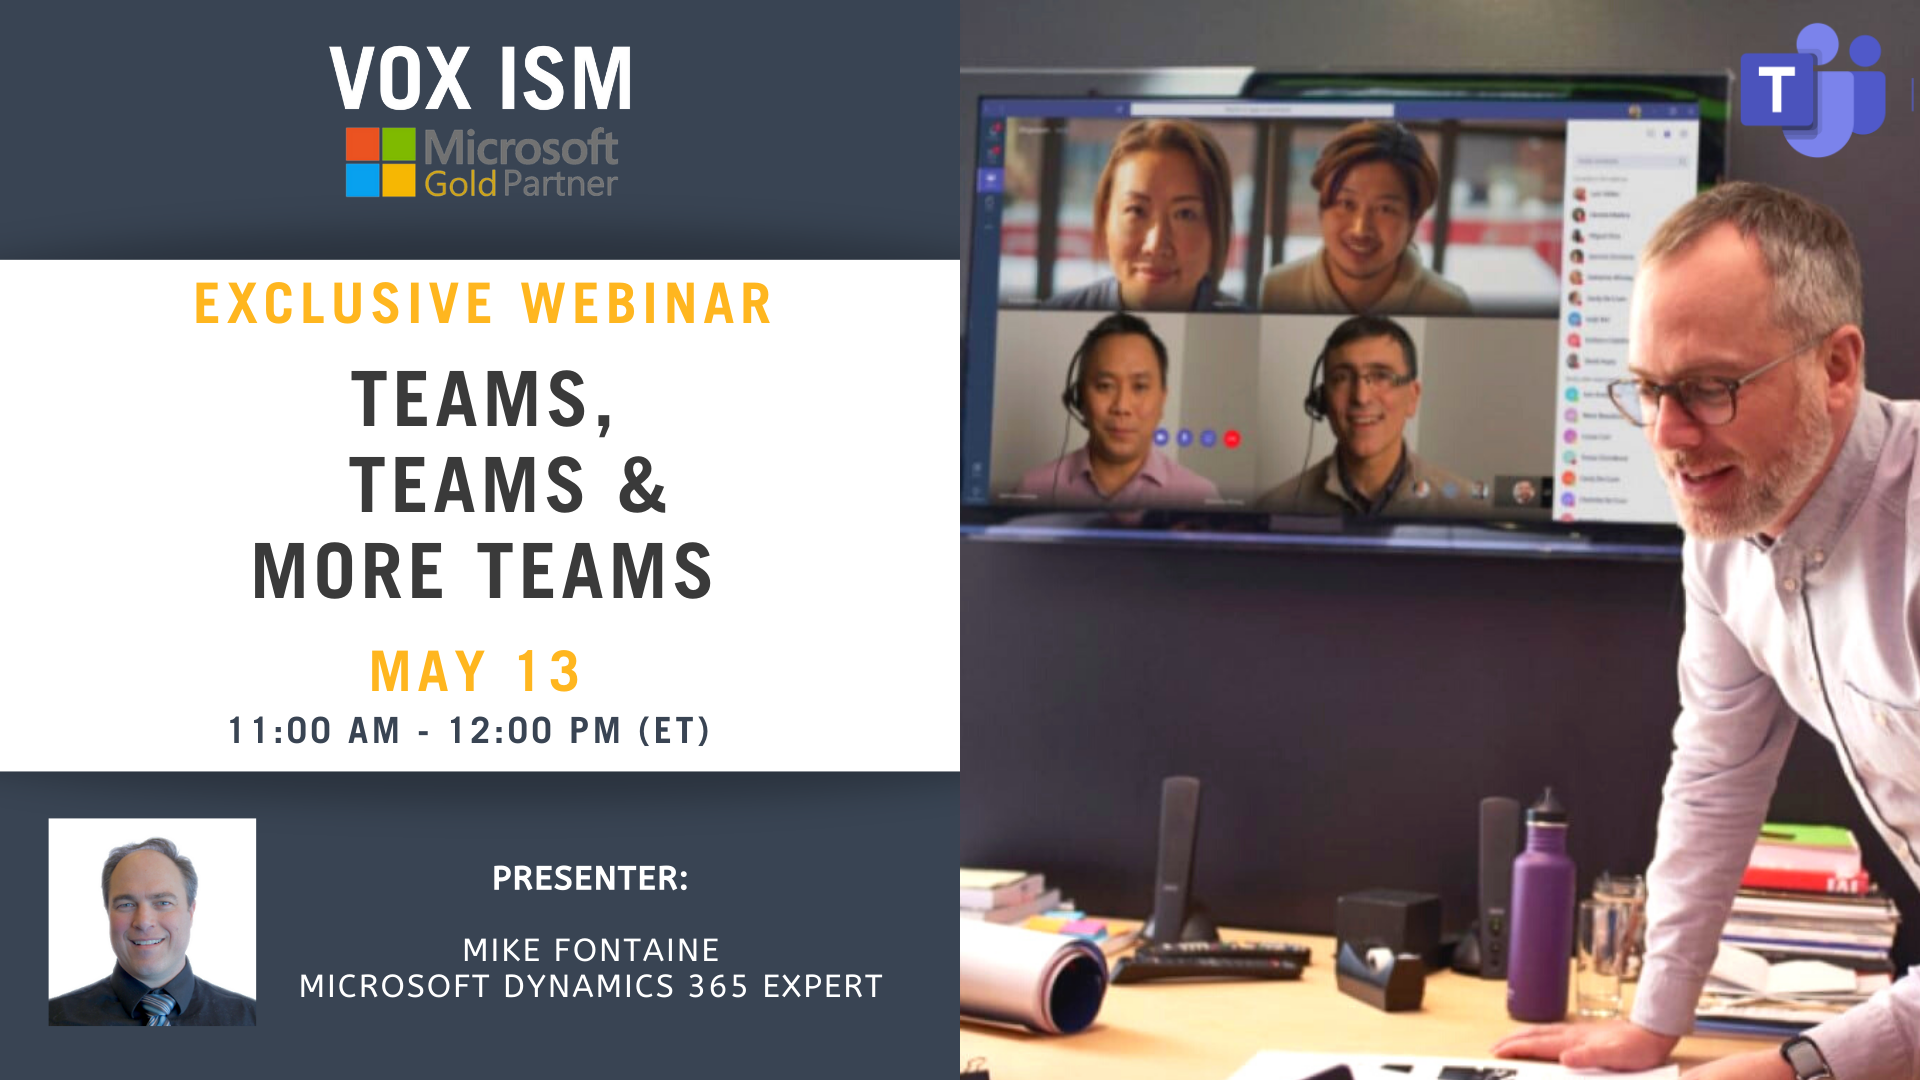 Teams, Teams, and more Teams - May 13 - Webinar VOX ISM